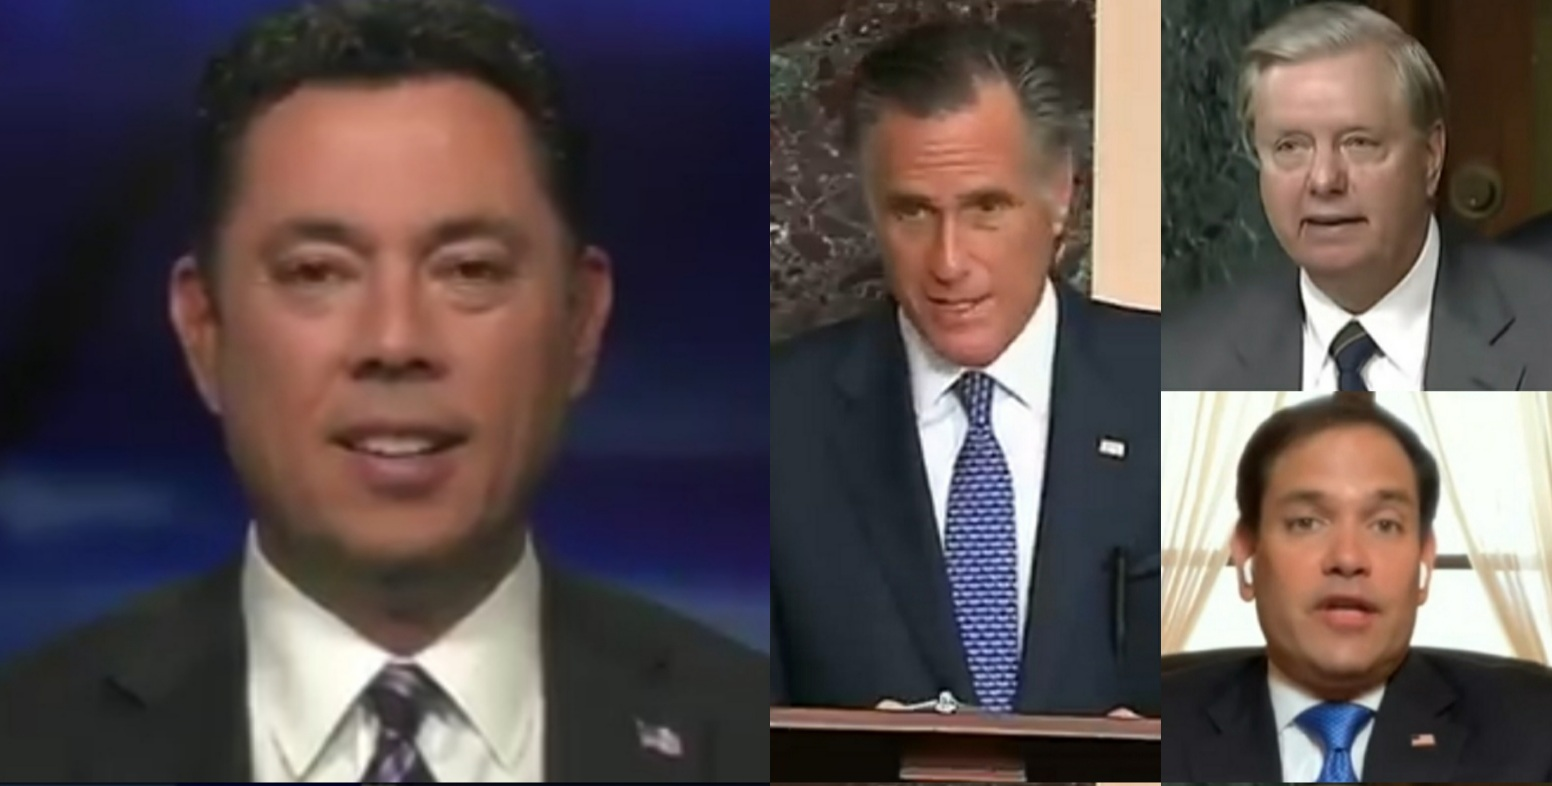 """Chaffetz Rips Romney, Rubio & Graham Over Their Latest 'RINO Resistance' Against Trump: """"You Don't Win Elections By Being In The Wishy Washy Middle"""""""